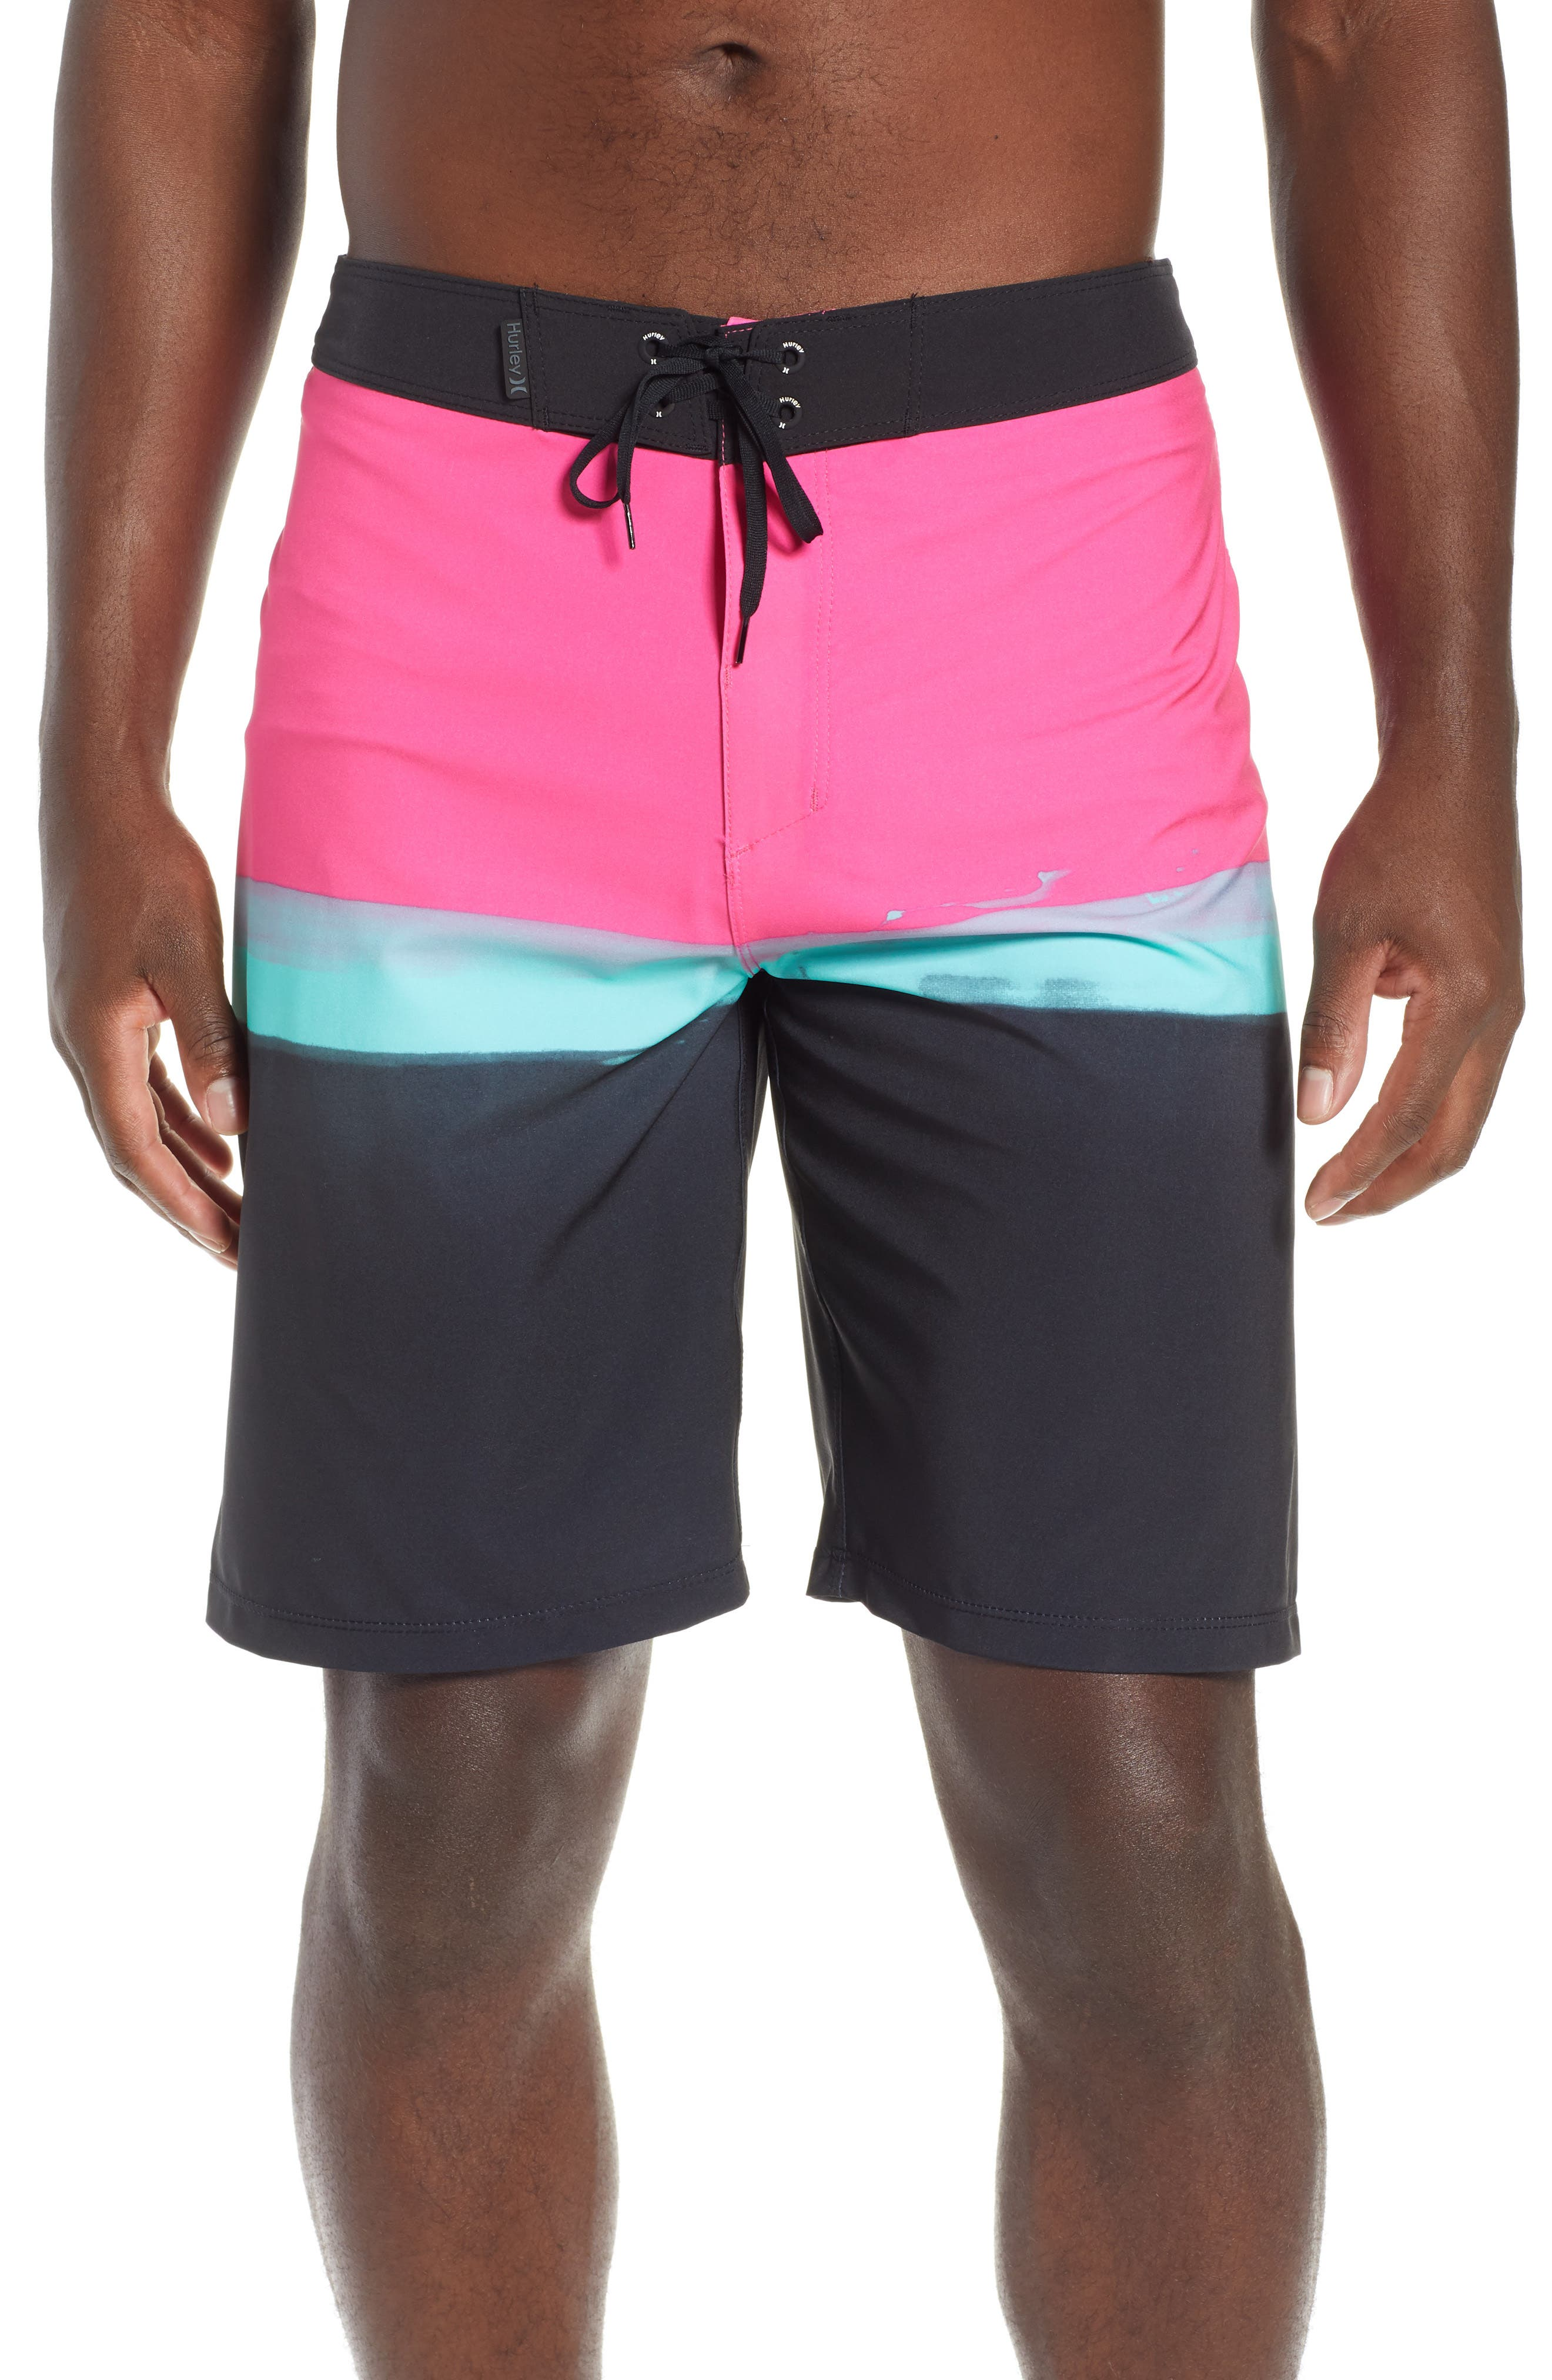 Hurley Phantom Pure Glass Board Shorts, Pink